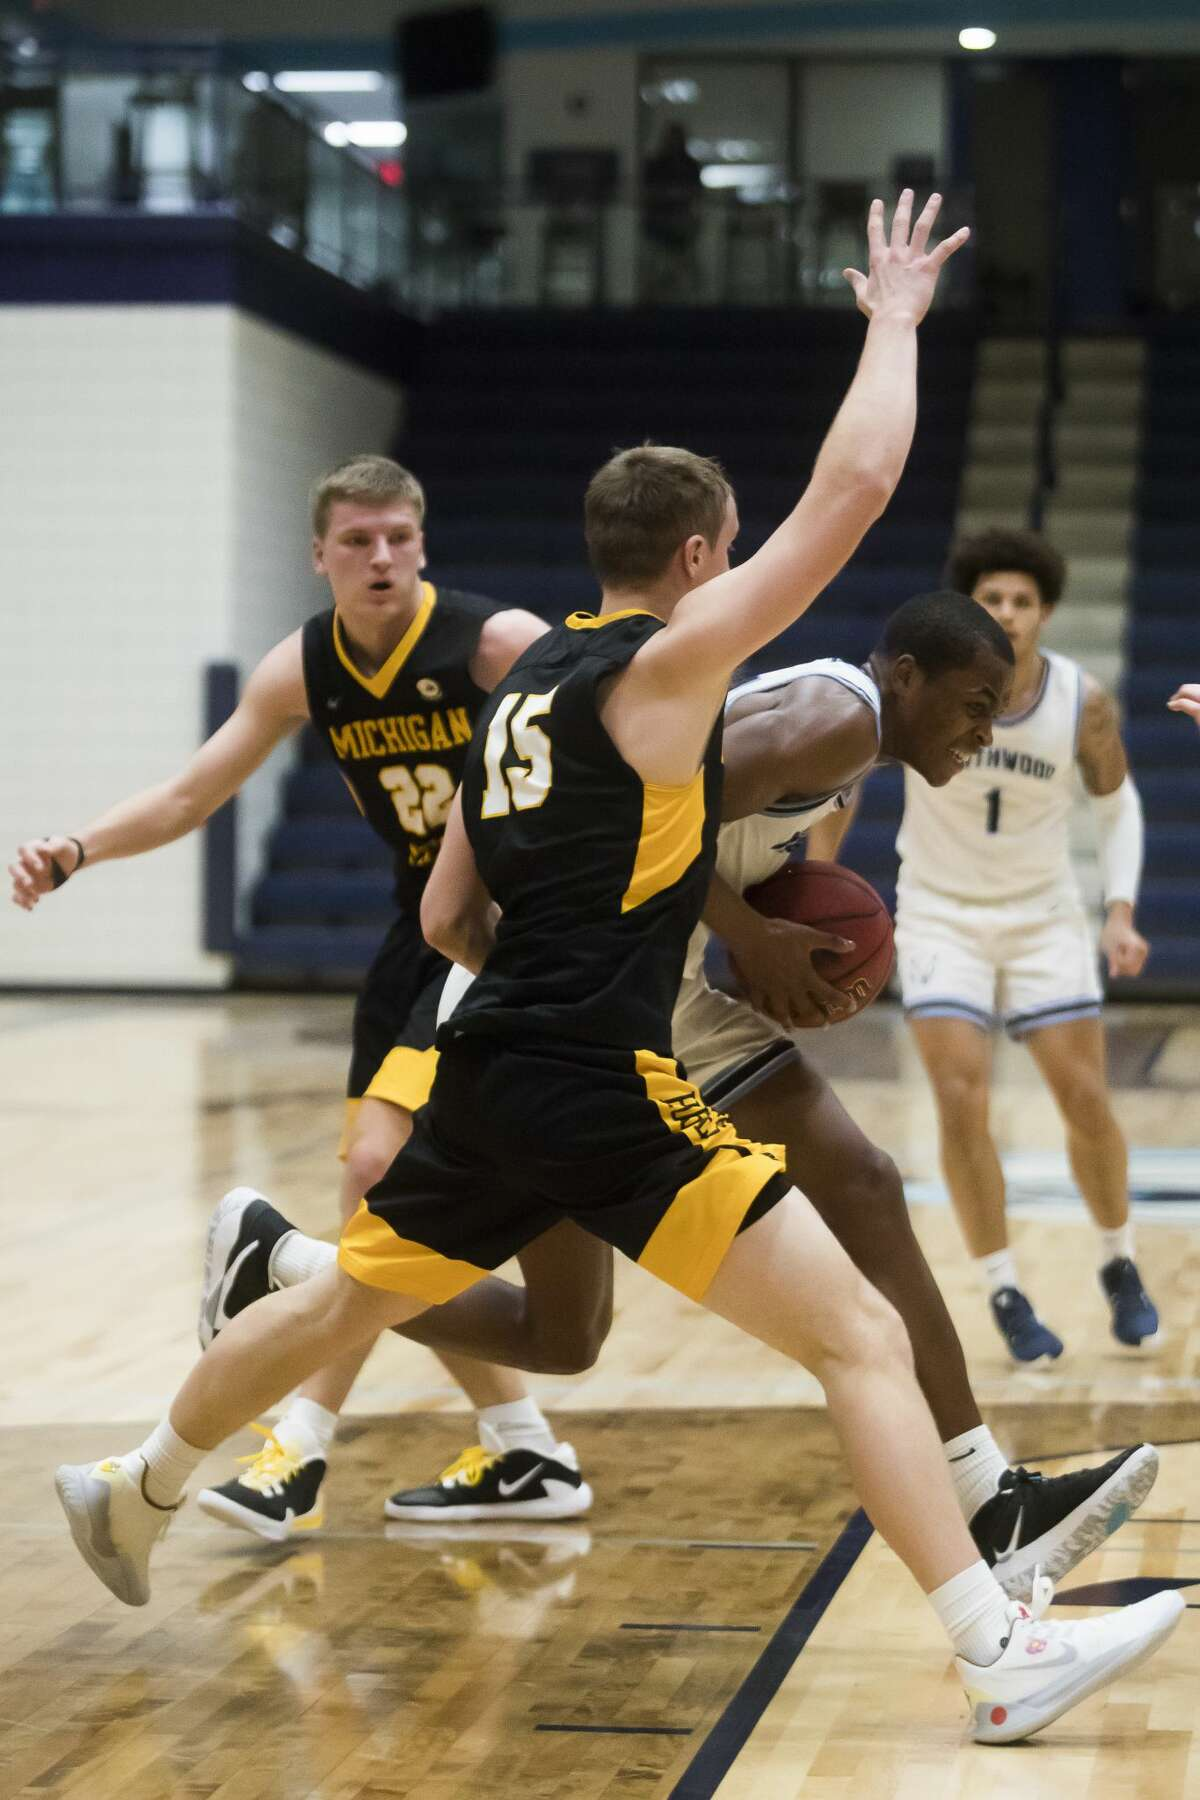 Northwood's Maurion Scott dribbles down the court during the Timberwolves' game against Michigan Tech Friday, Jan. 15, 2021 at Northwood University. (Katy Kildee/kkildee@mdn.net)